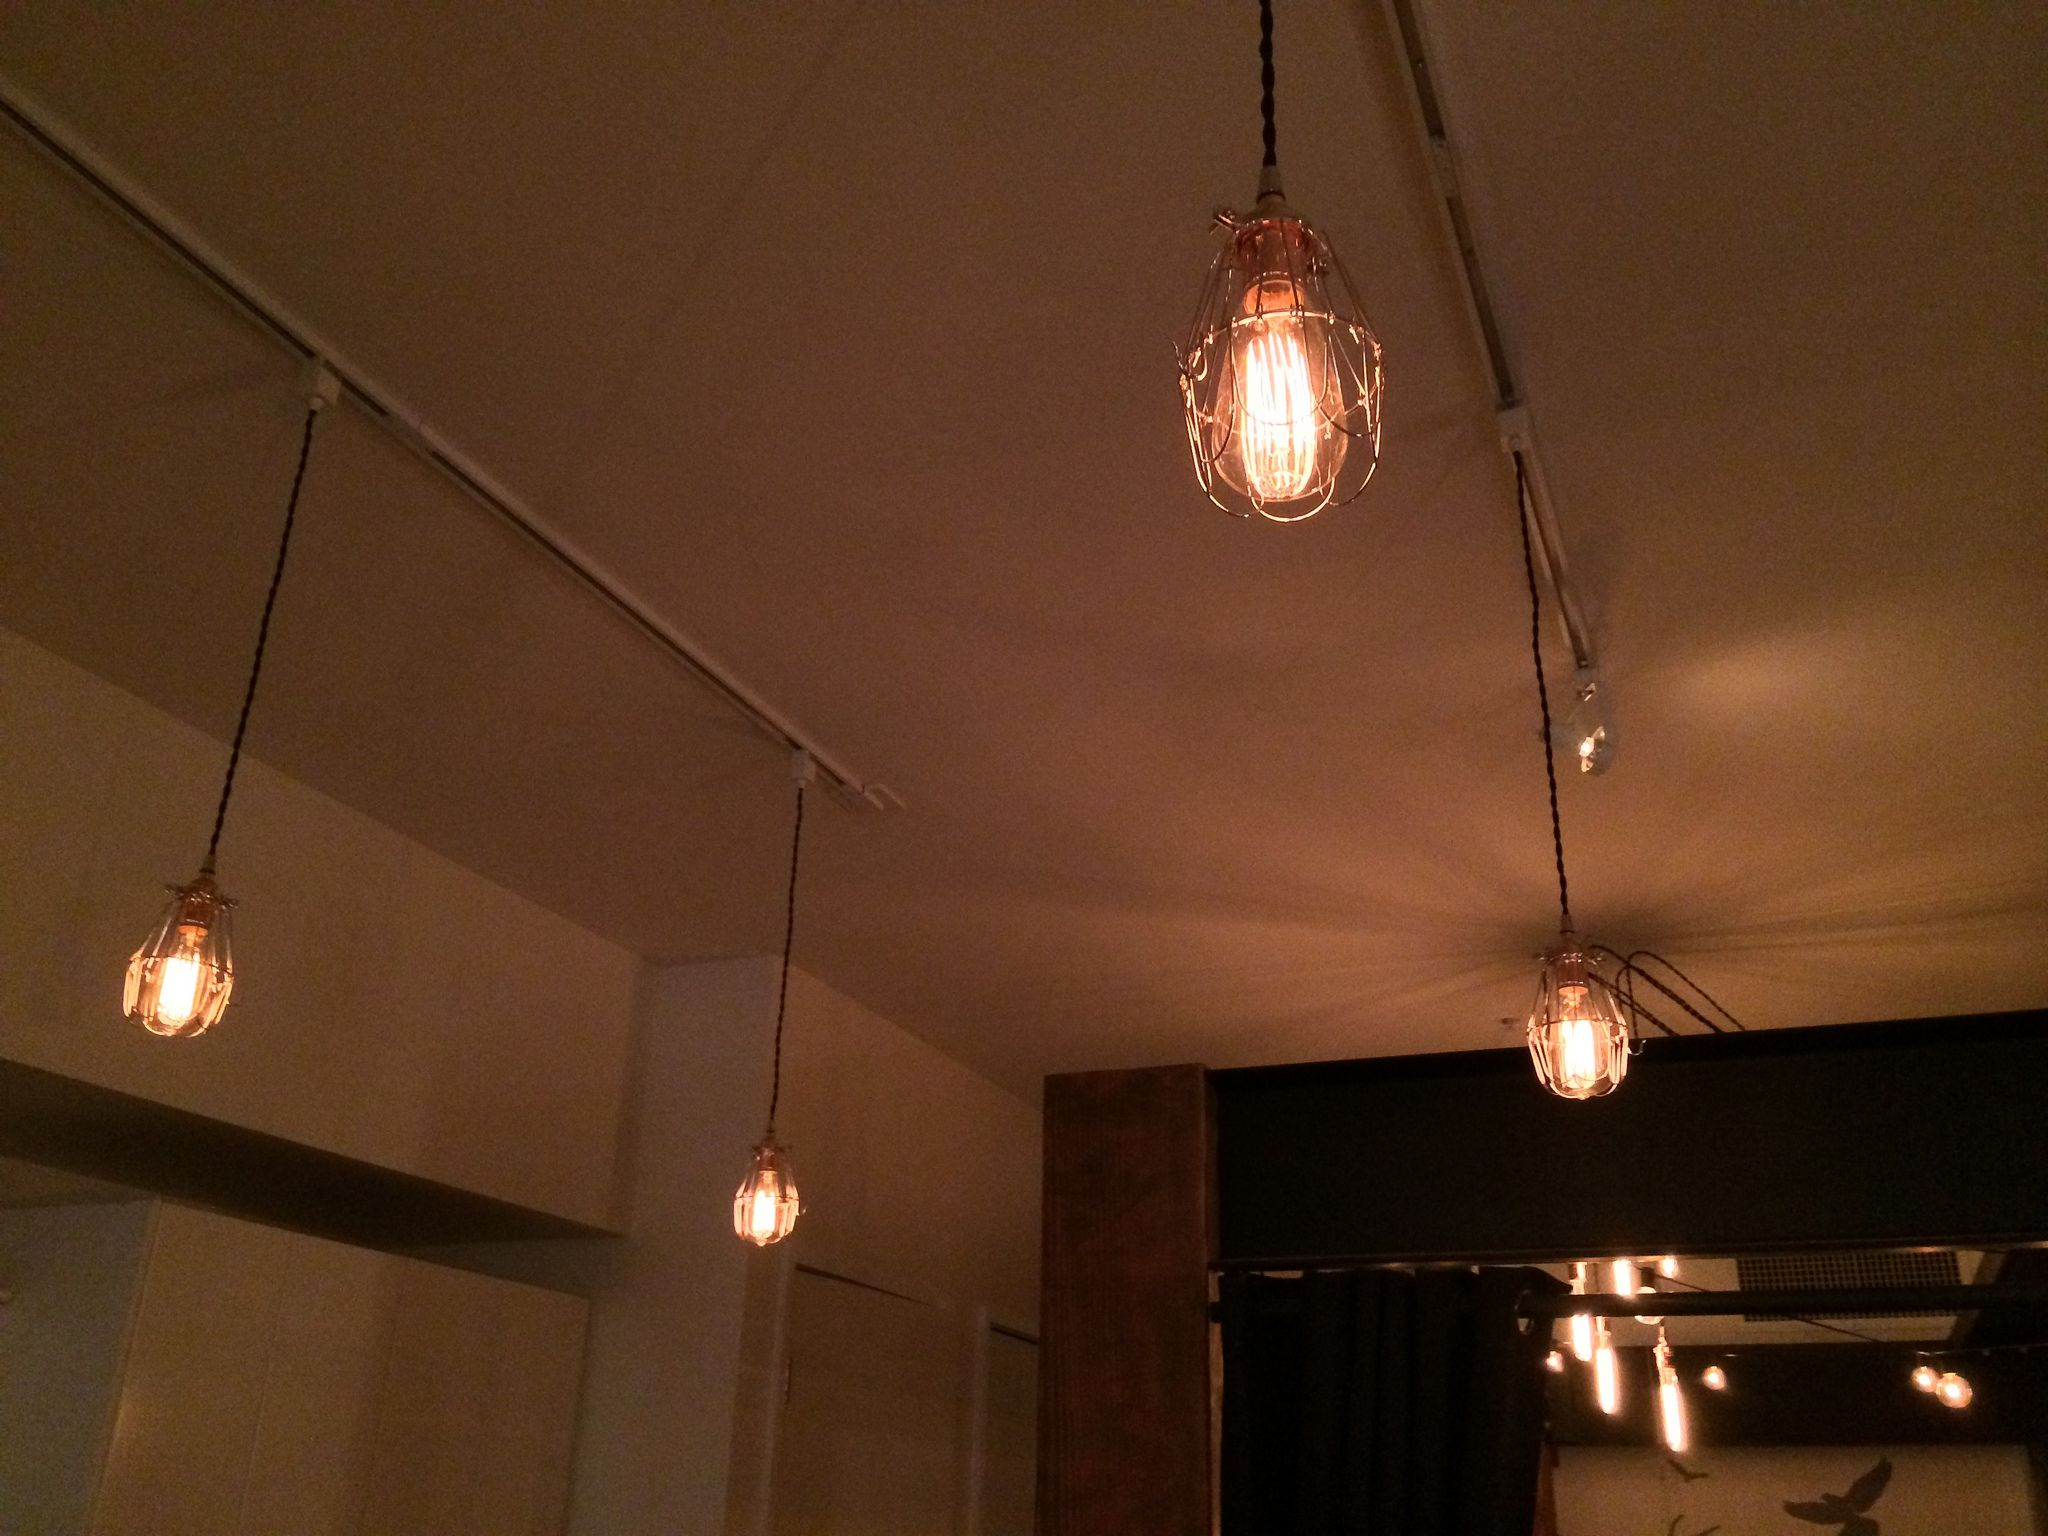 Easy Fix Boring Old Track Lighting Turned Into Awesome Vintage